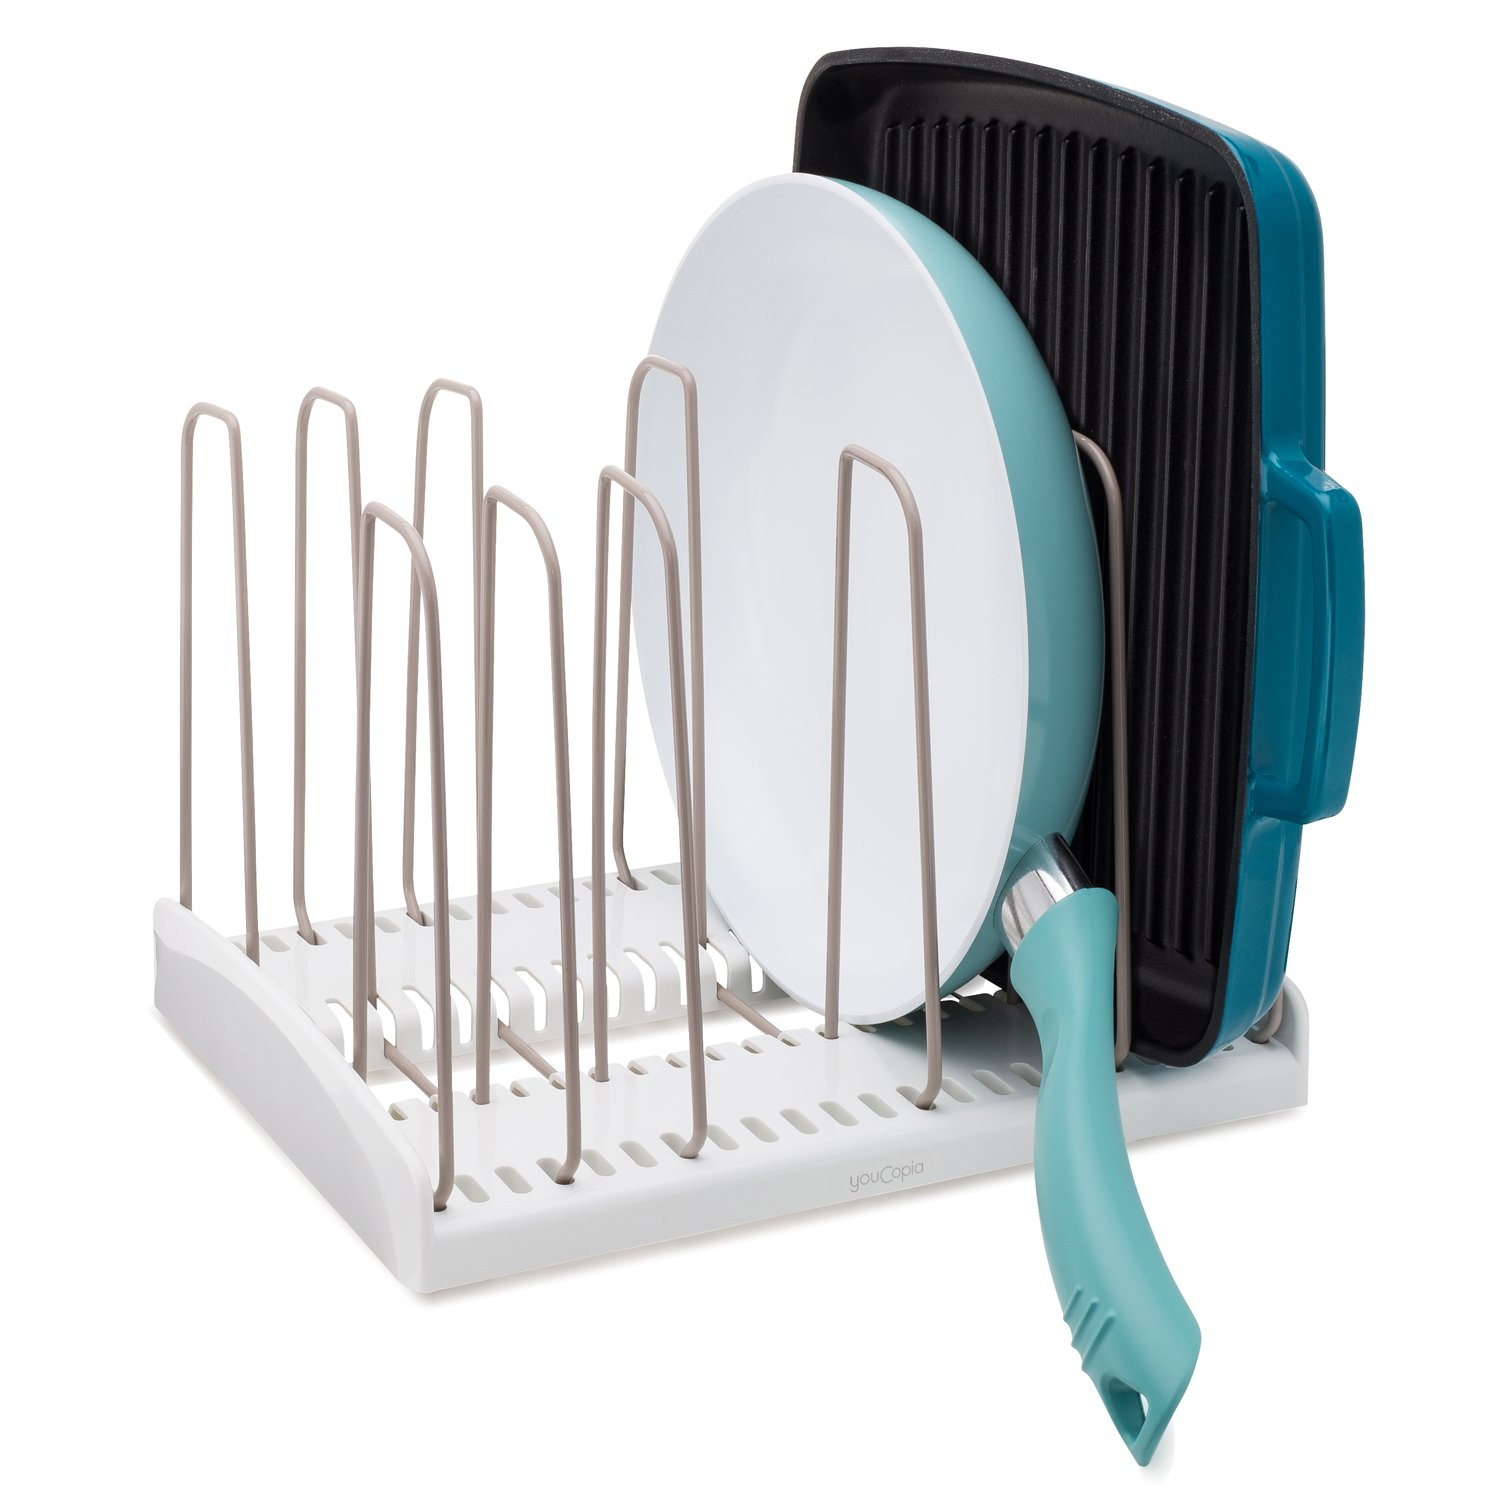 YouCopia Cookware Rack Extra Wire Dividers, Set of 4 by YouCopia (Image #5)